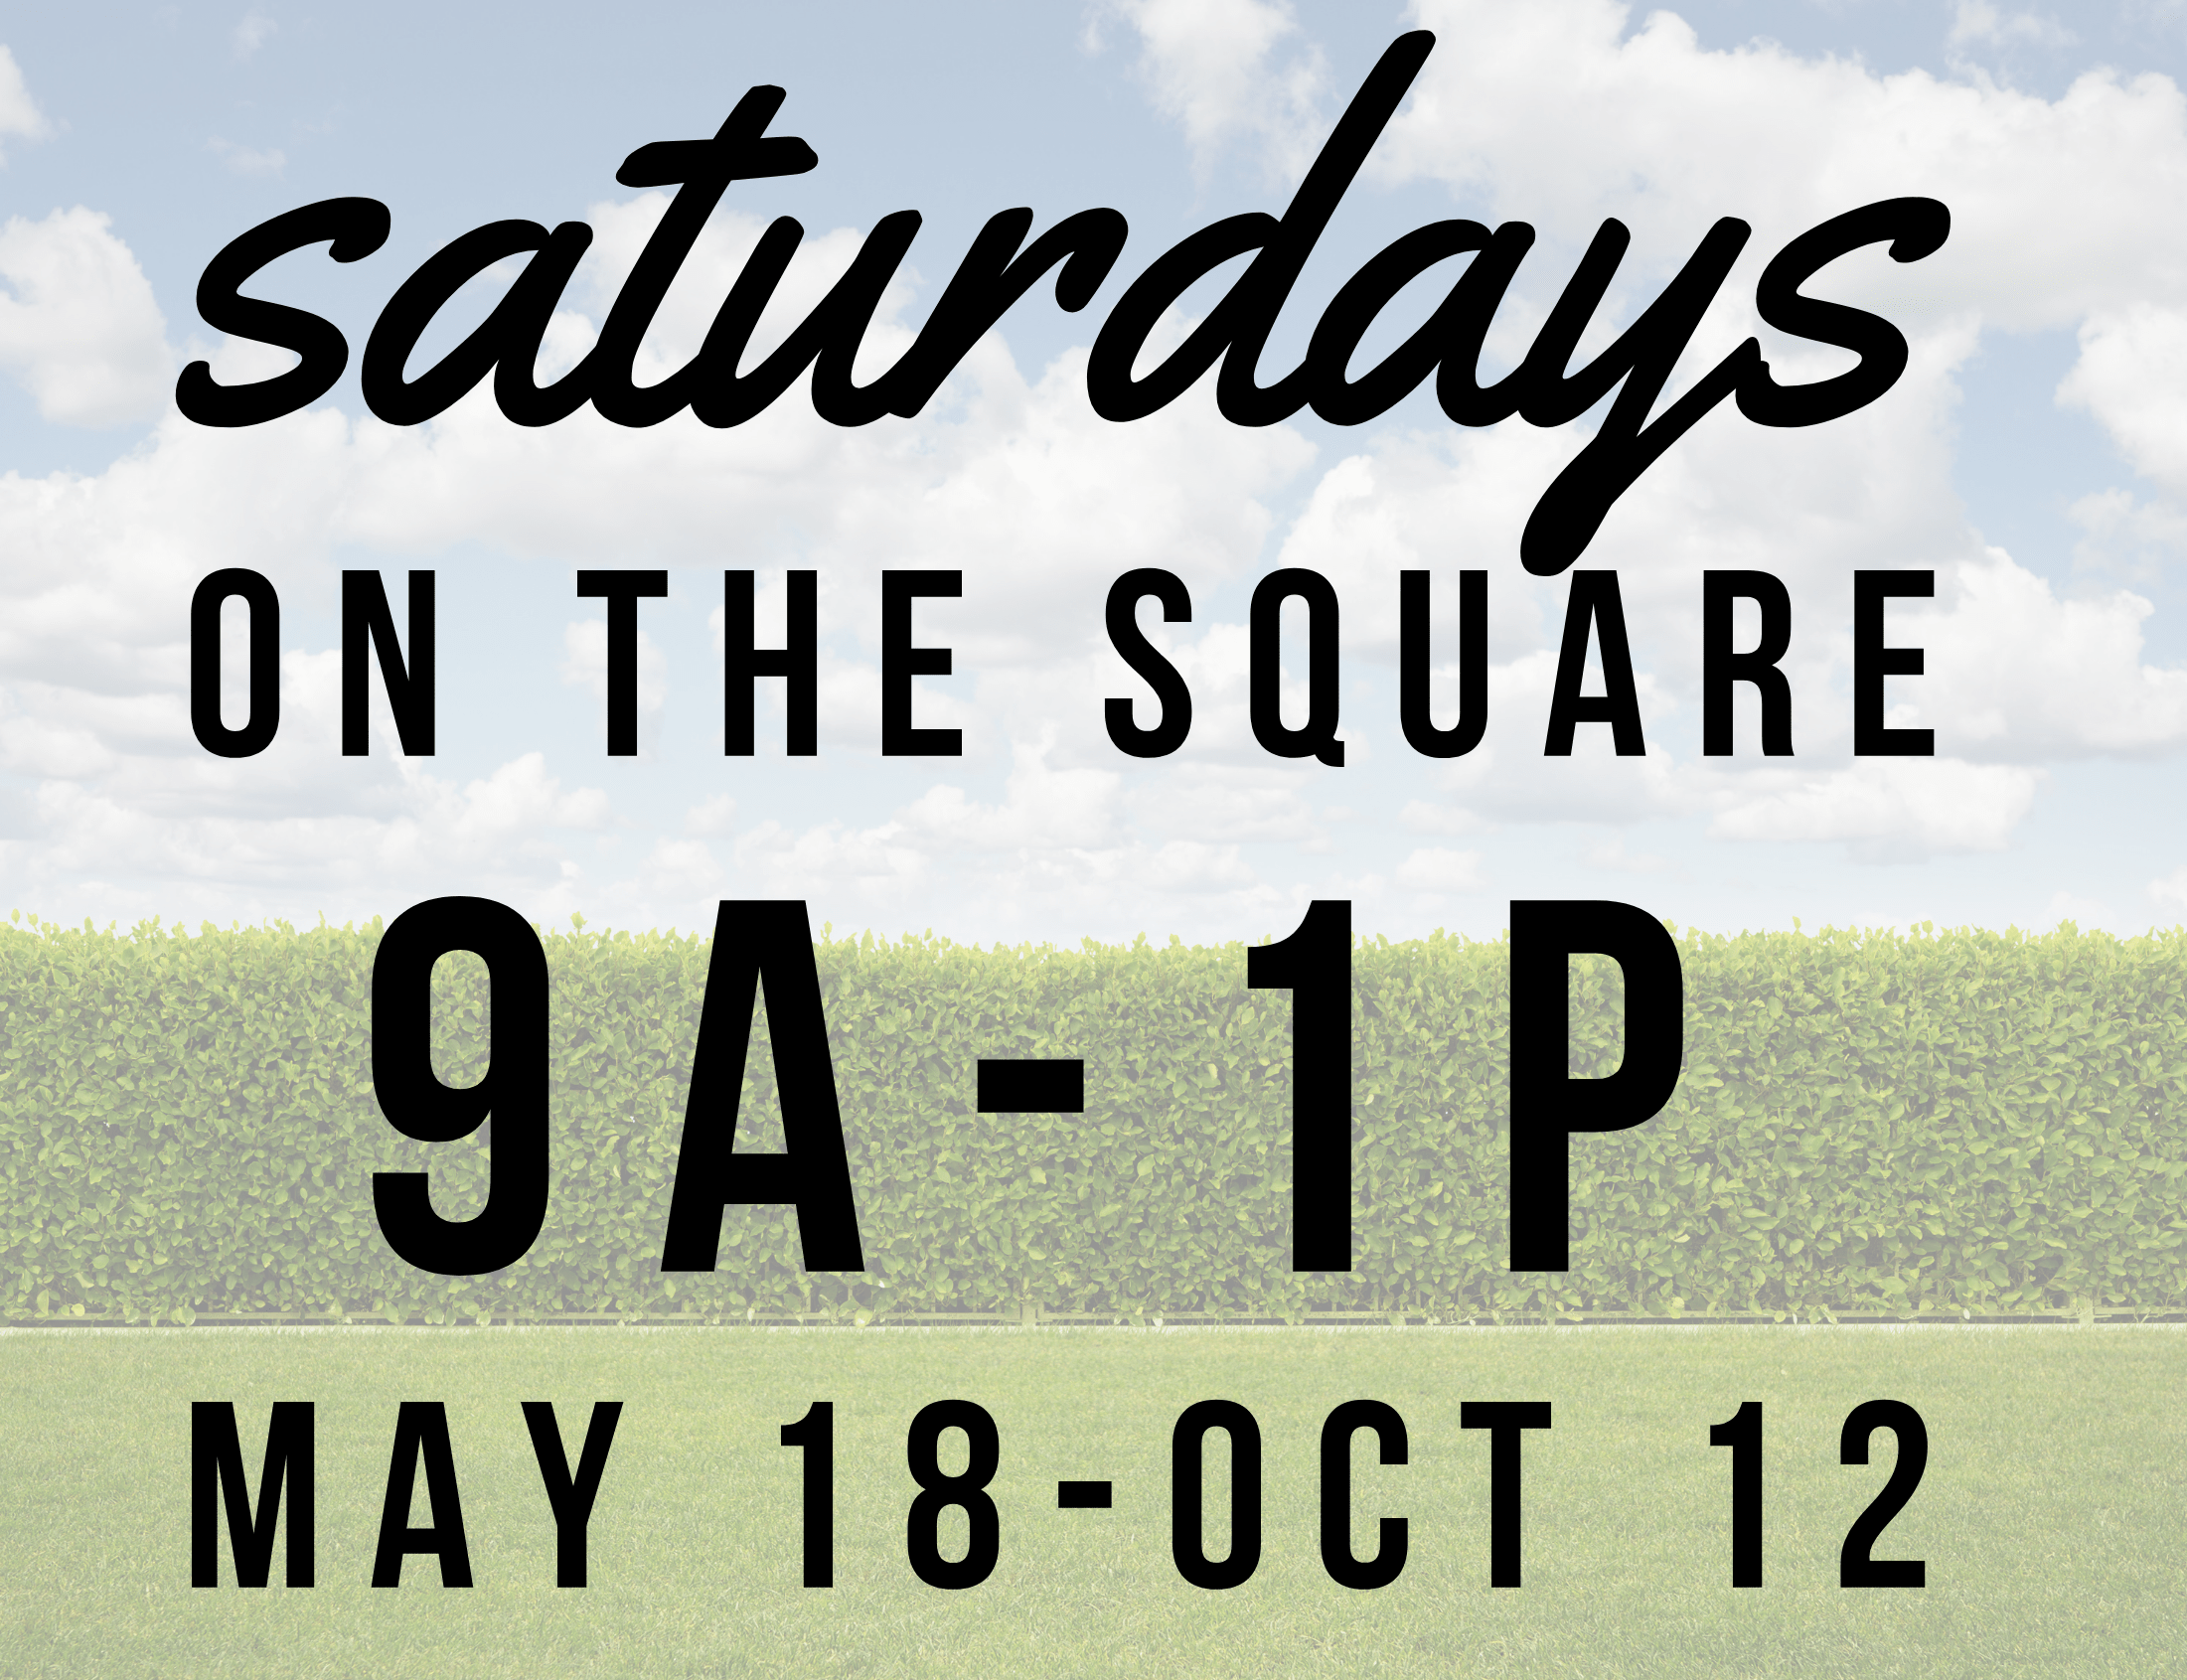 Saturdays-on-the-square-final-logo.jpg